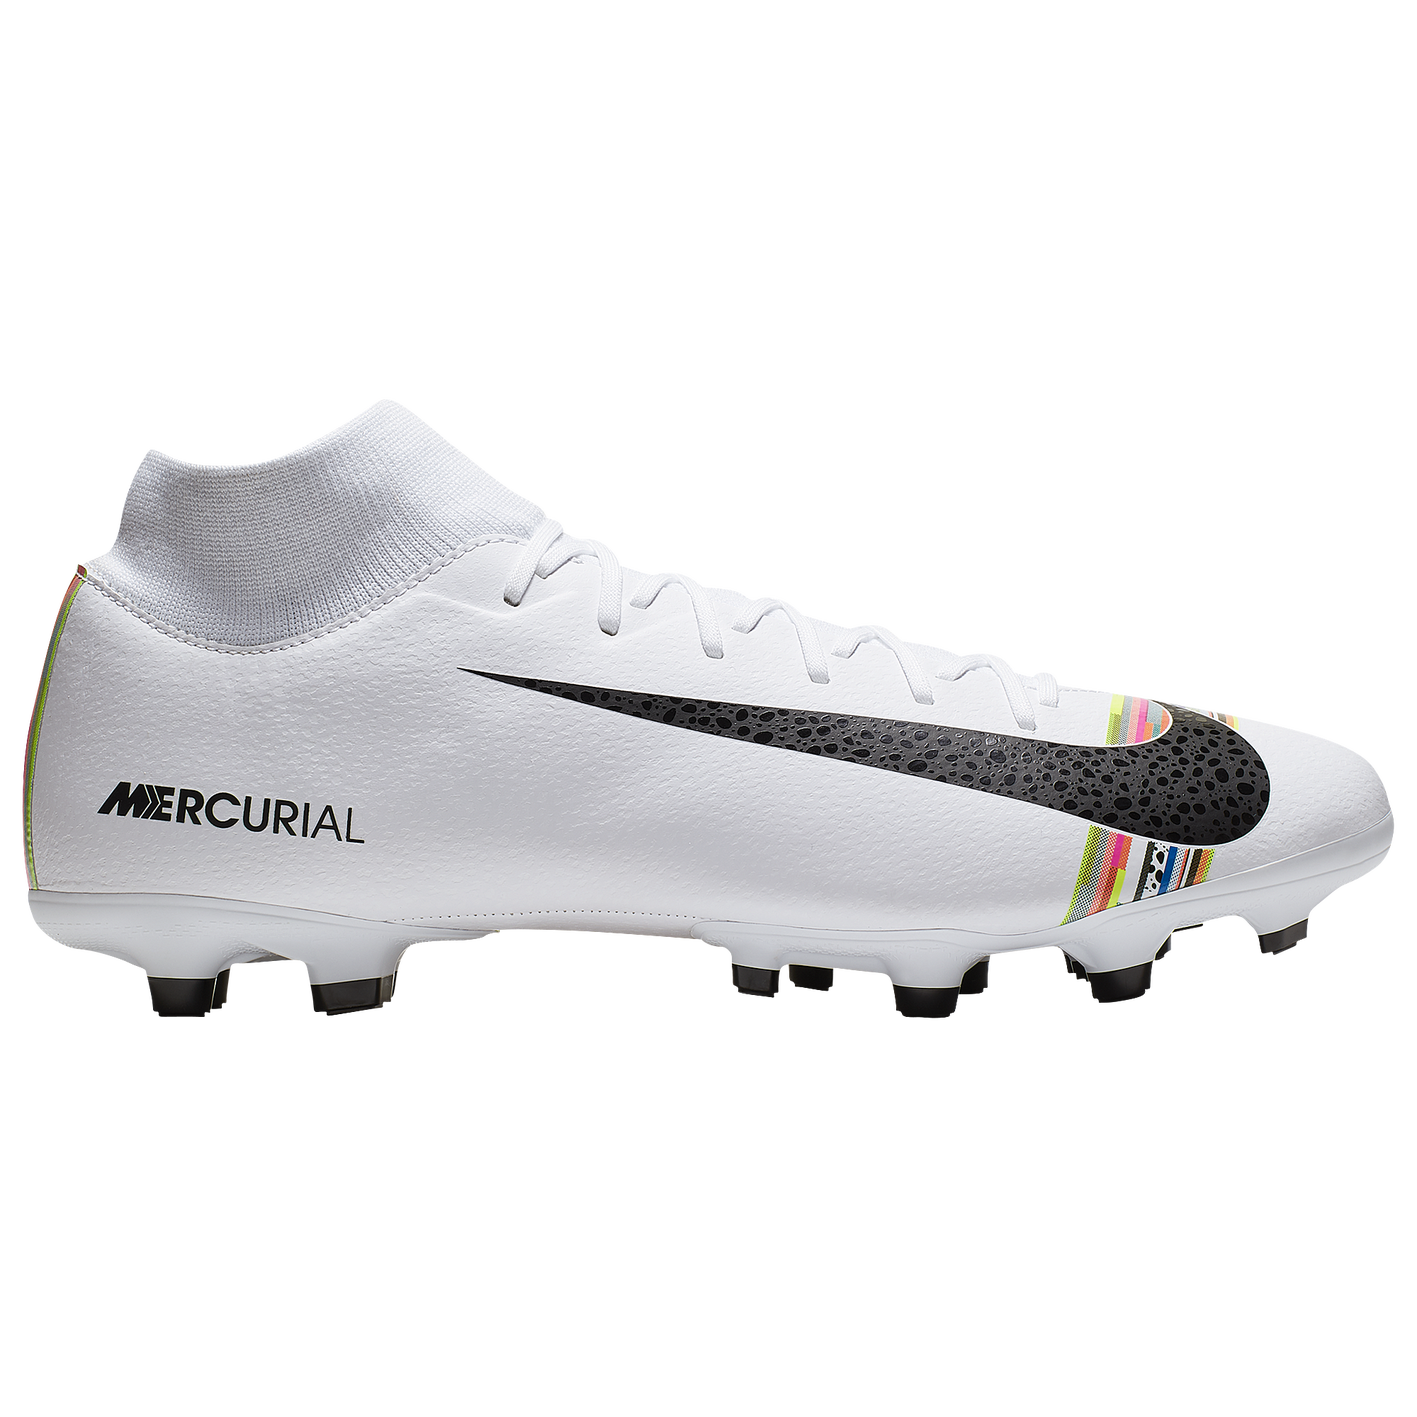 81decc5f3 Nike Mercurial Superfly 6 Academy MG - Men s - Soccer - Shoes ...